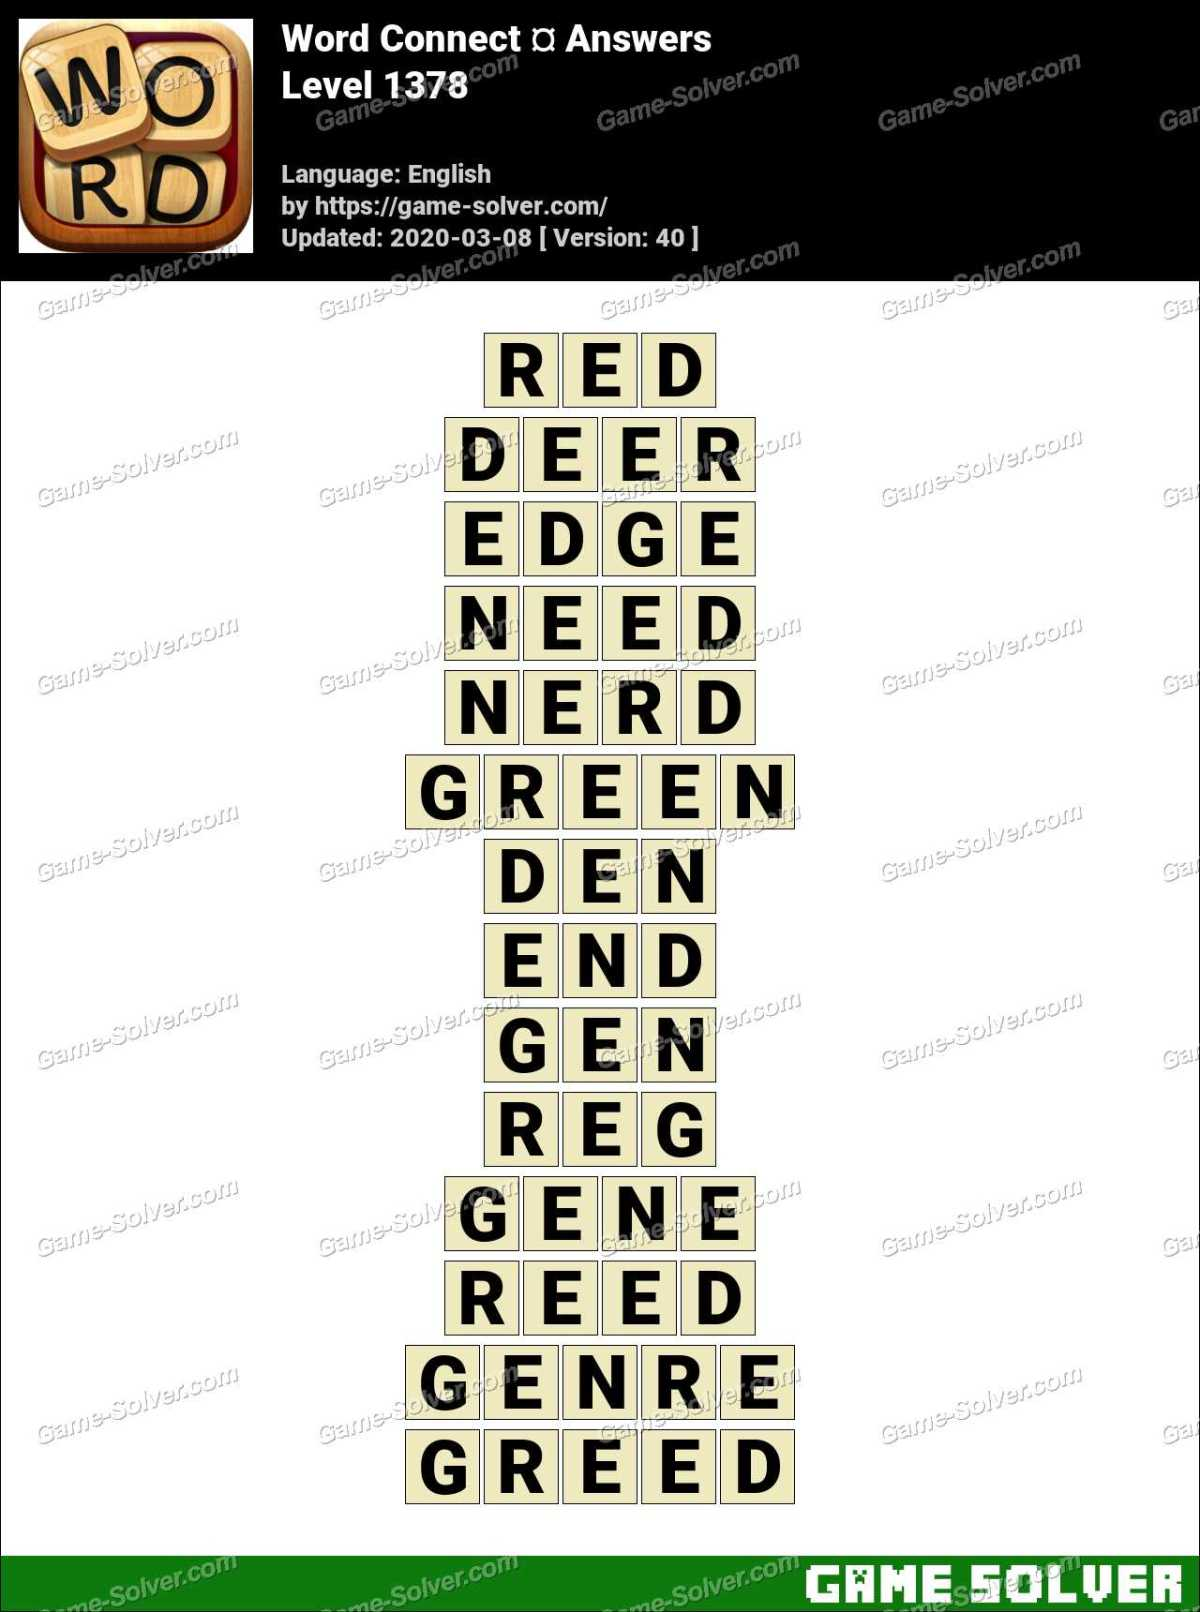 Word Connect Level 1378 Answers